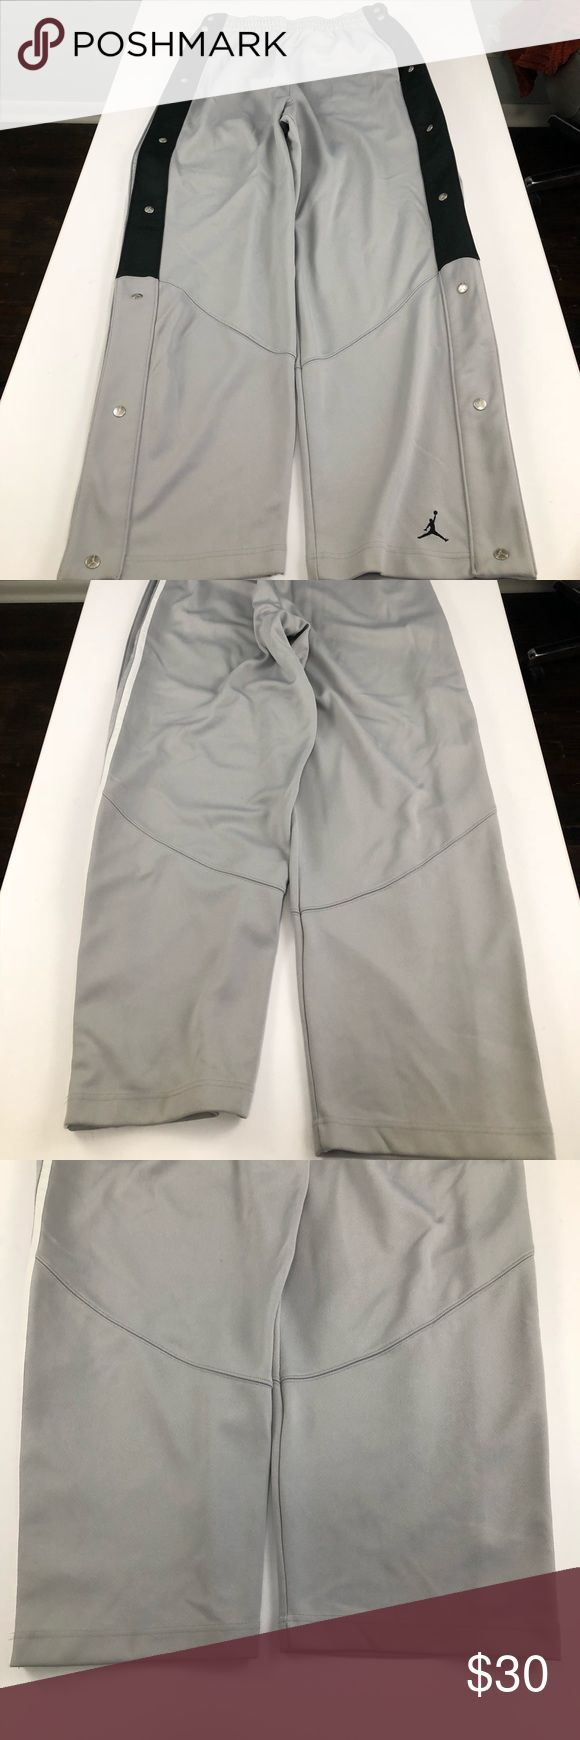 Air Jordan Basketball Pants size Large These tear away sweatpants are in great condition. Heels are clean and there are no snags or stains throughout. Snap buttons with Jordan logo on them. See pictures to verify measurements. Please feel free to ask further questions and all offers will be considered.  ••Posh Ambassador•• ••Bundle for Maximum Savings•• Air Jordan Pants Sweatpants & Joggers